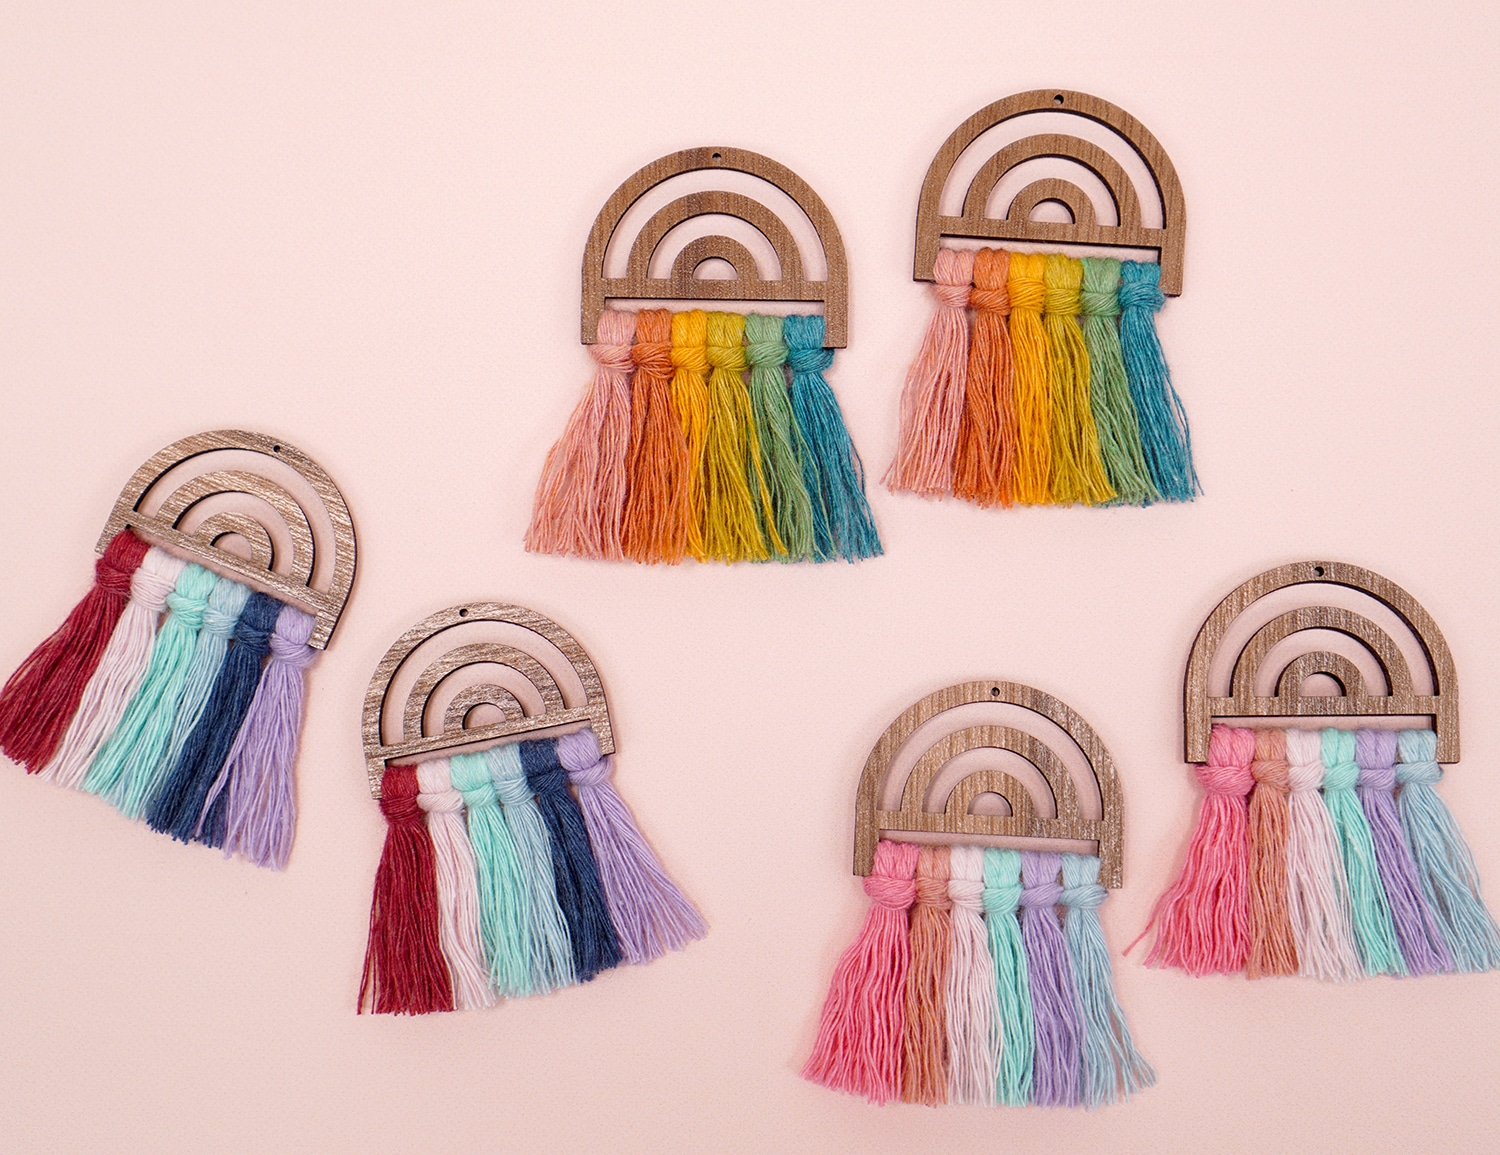 Three Assorted Pairs of Wooden Rainbow Macrame Earrings on Peach Background